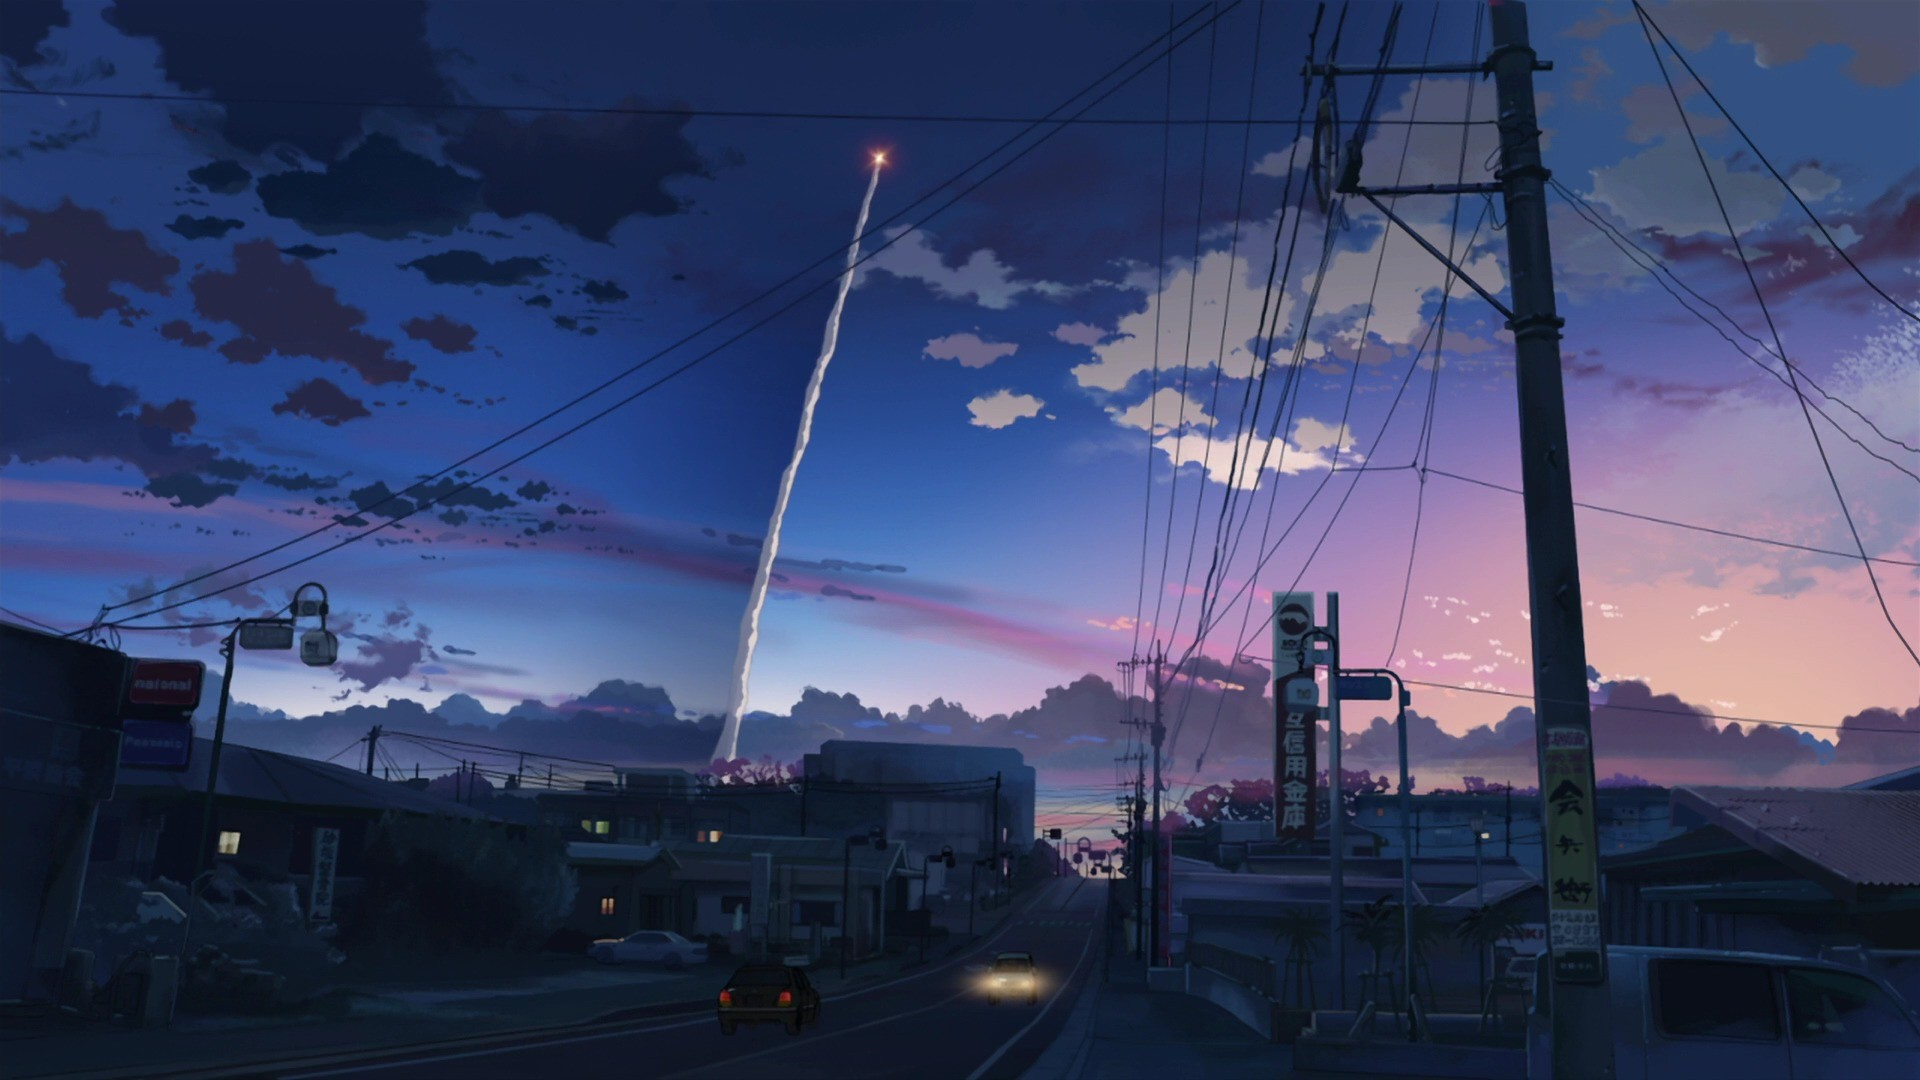 Wallpapers Iphone 7 Anime Scenery Wallpaper 183 ① Download Free Awesome